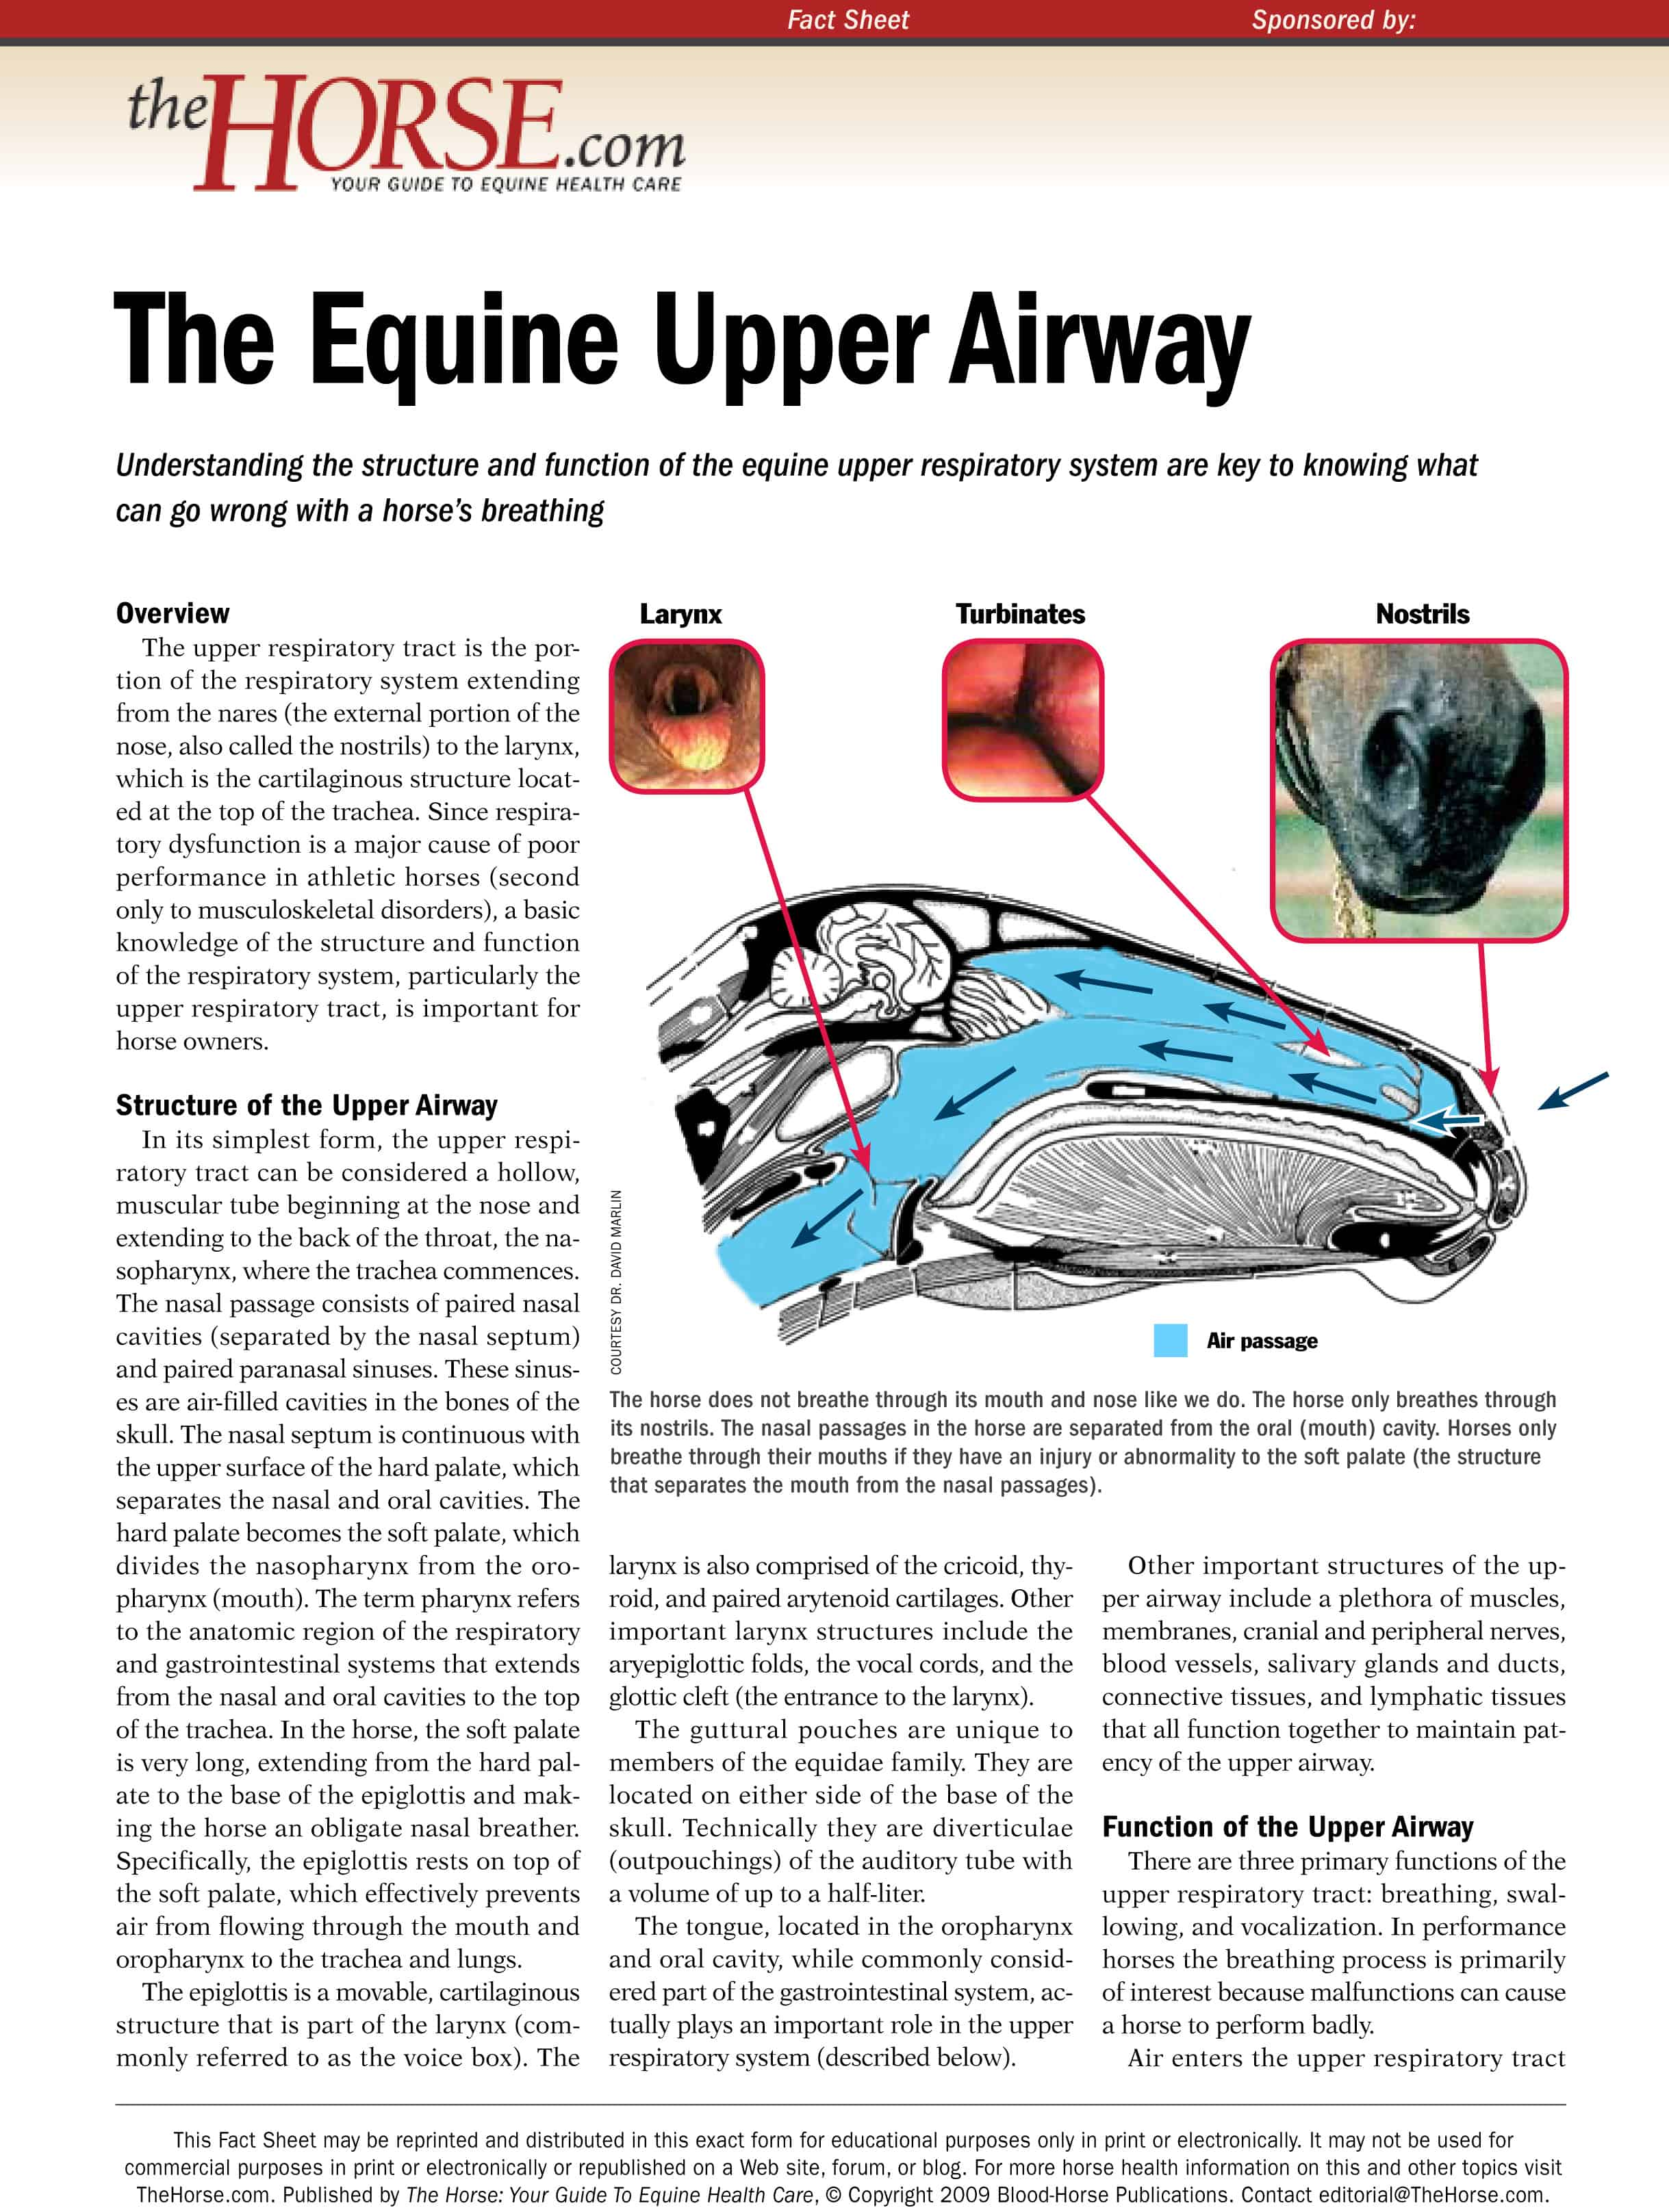 Equine Upper Airway – The Horse